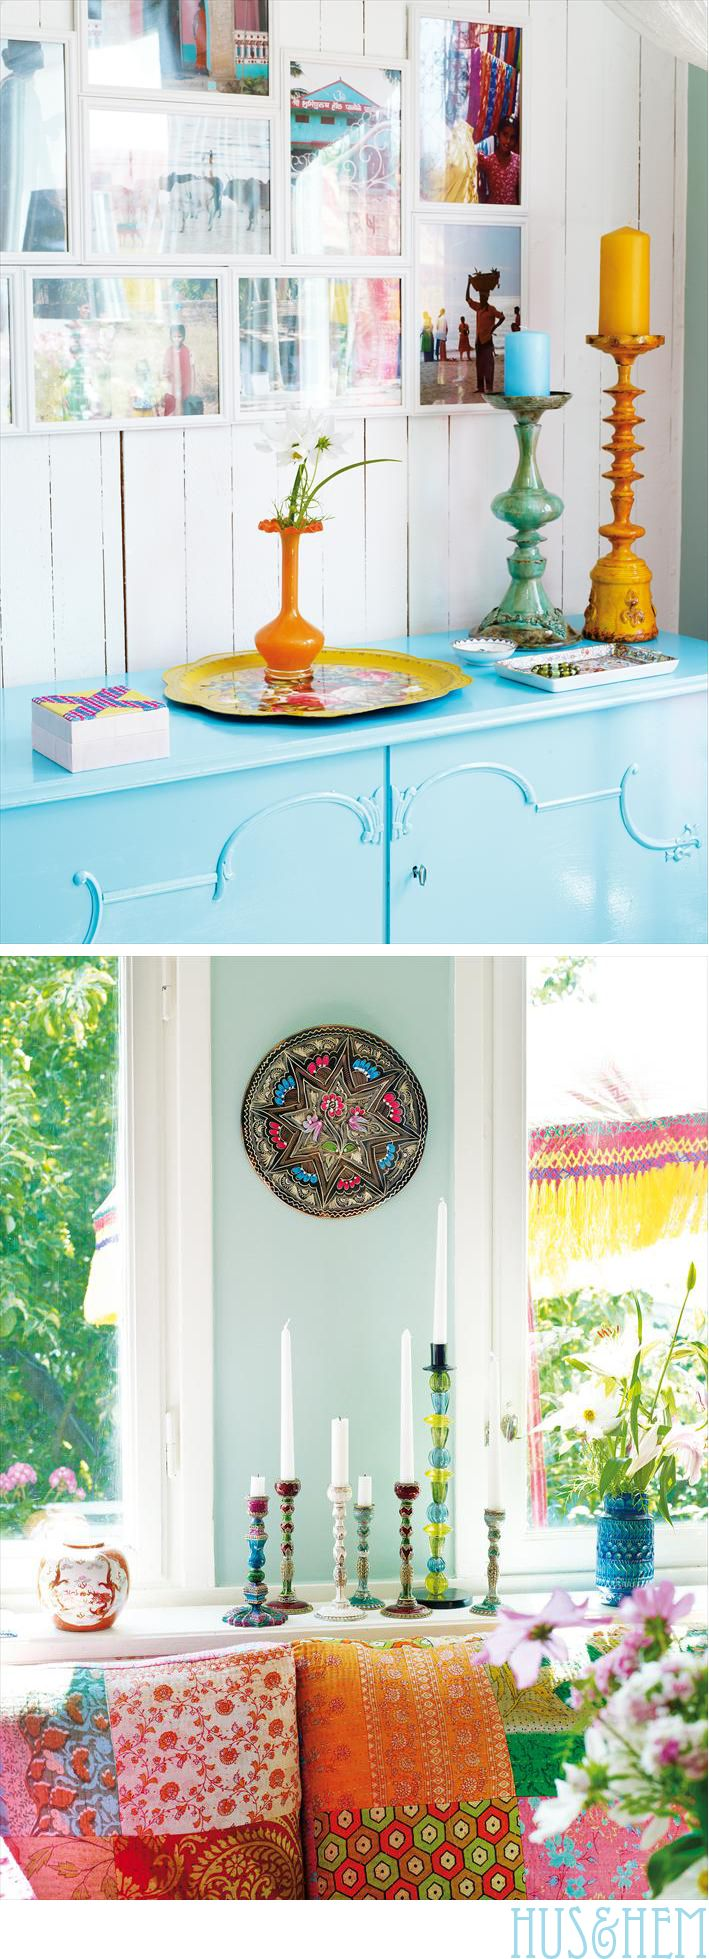 Colourful Home STyle: Colourful Home STyle @Tamlyn Rhodes Willard - thought of you!